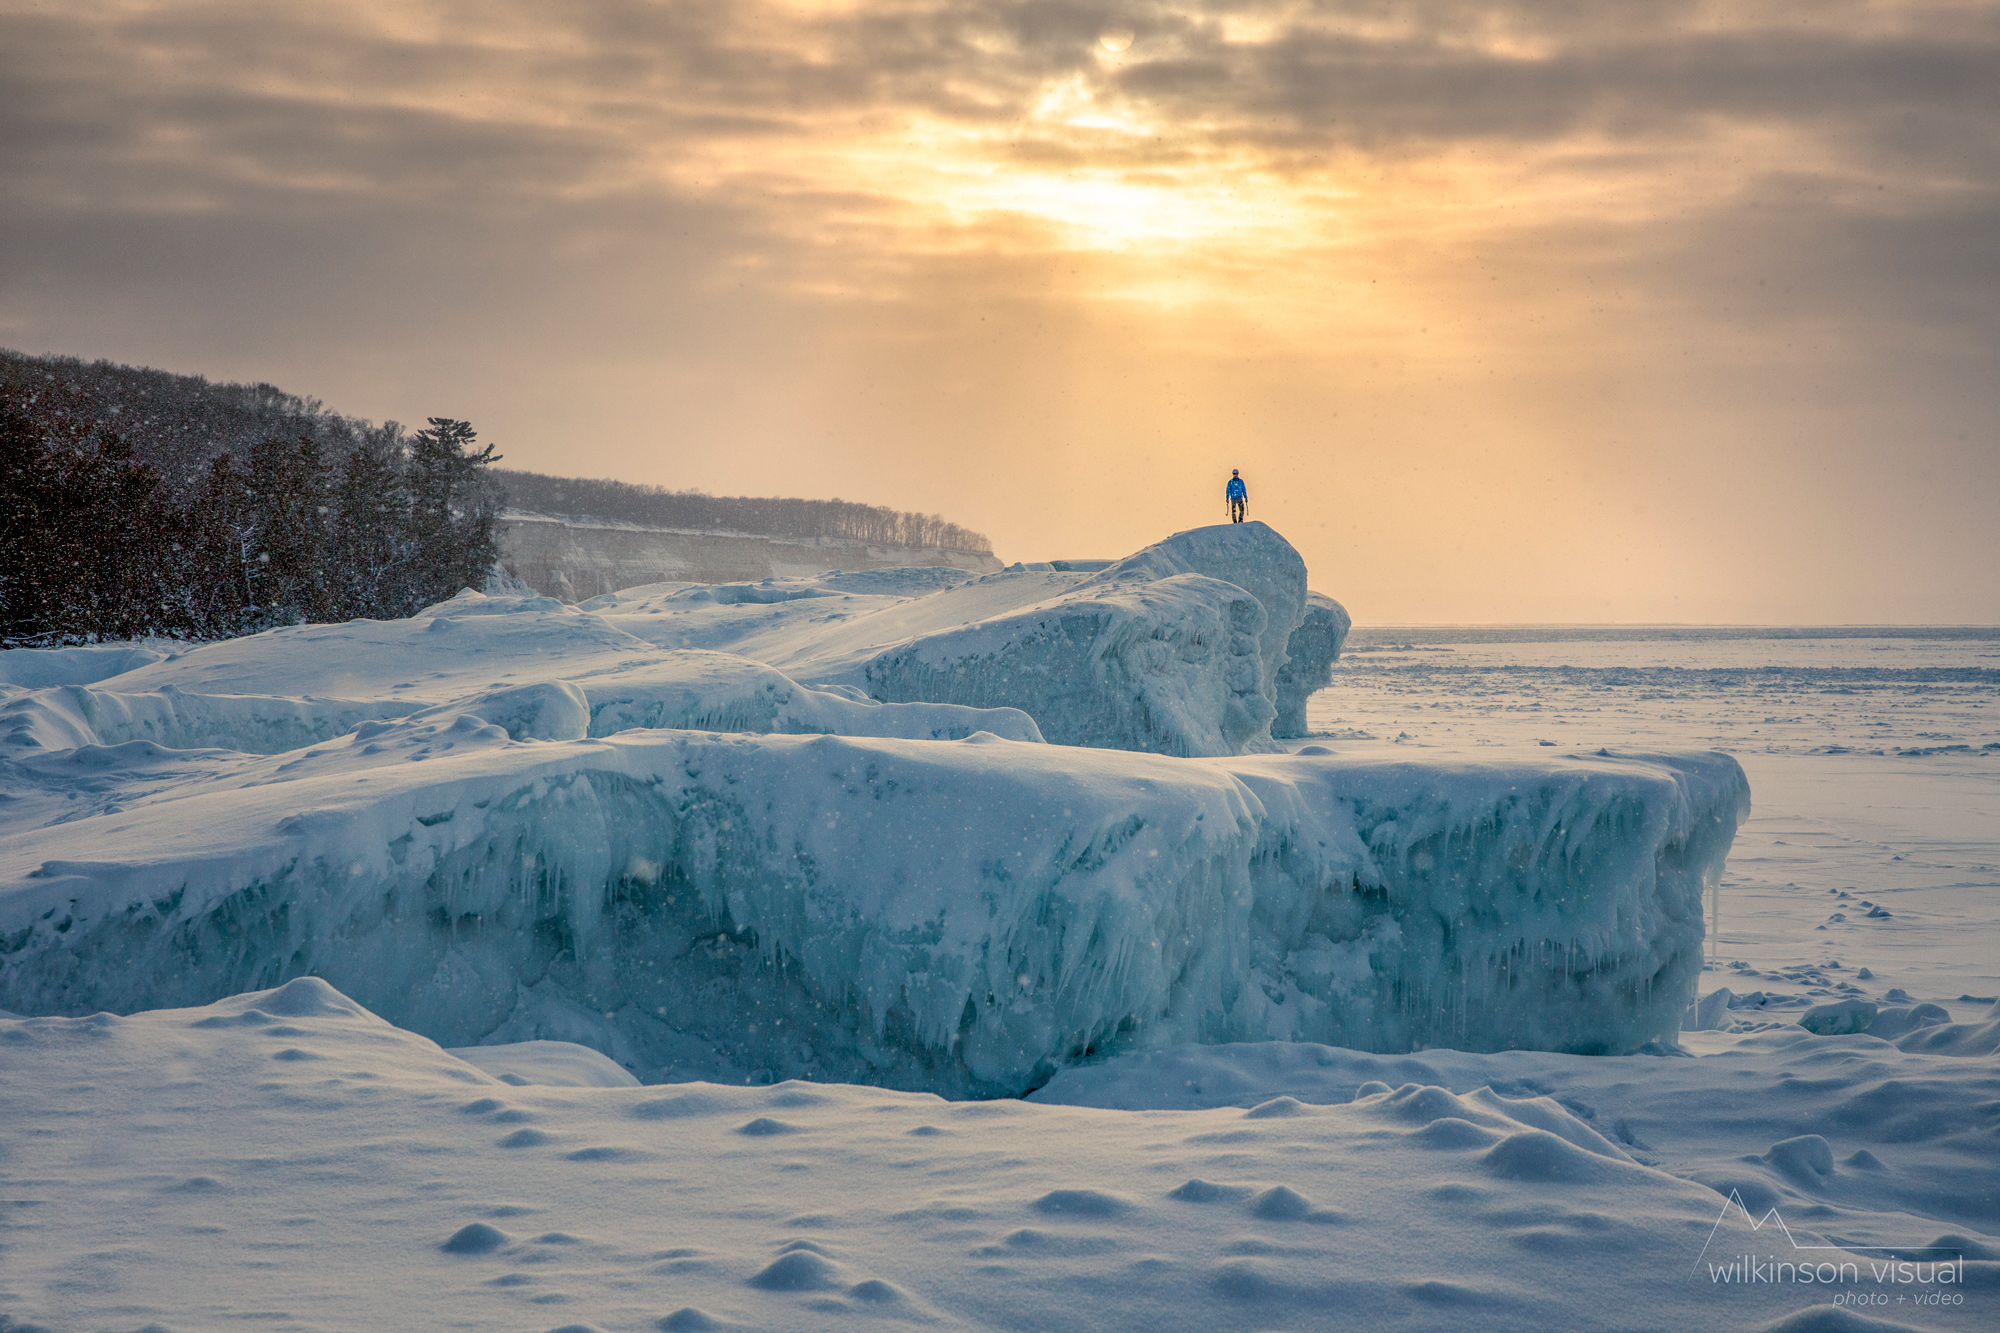 Brett Merlin walks along ice boulders in Northern Michigan.